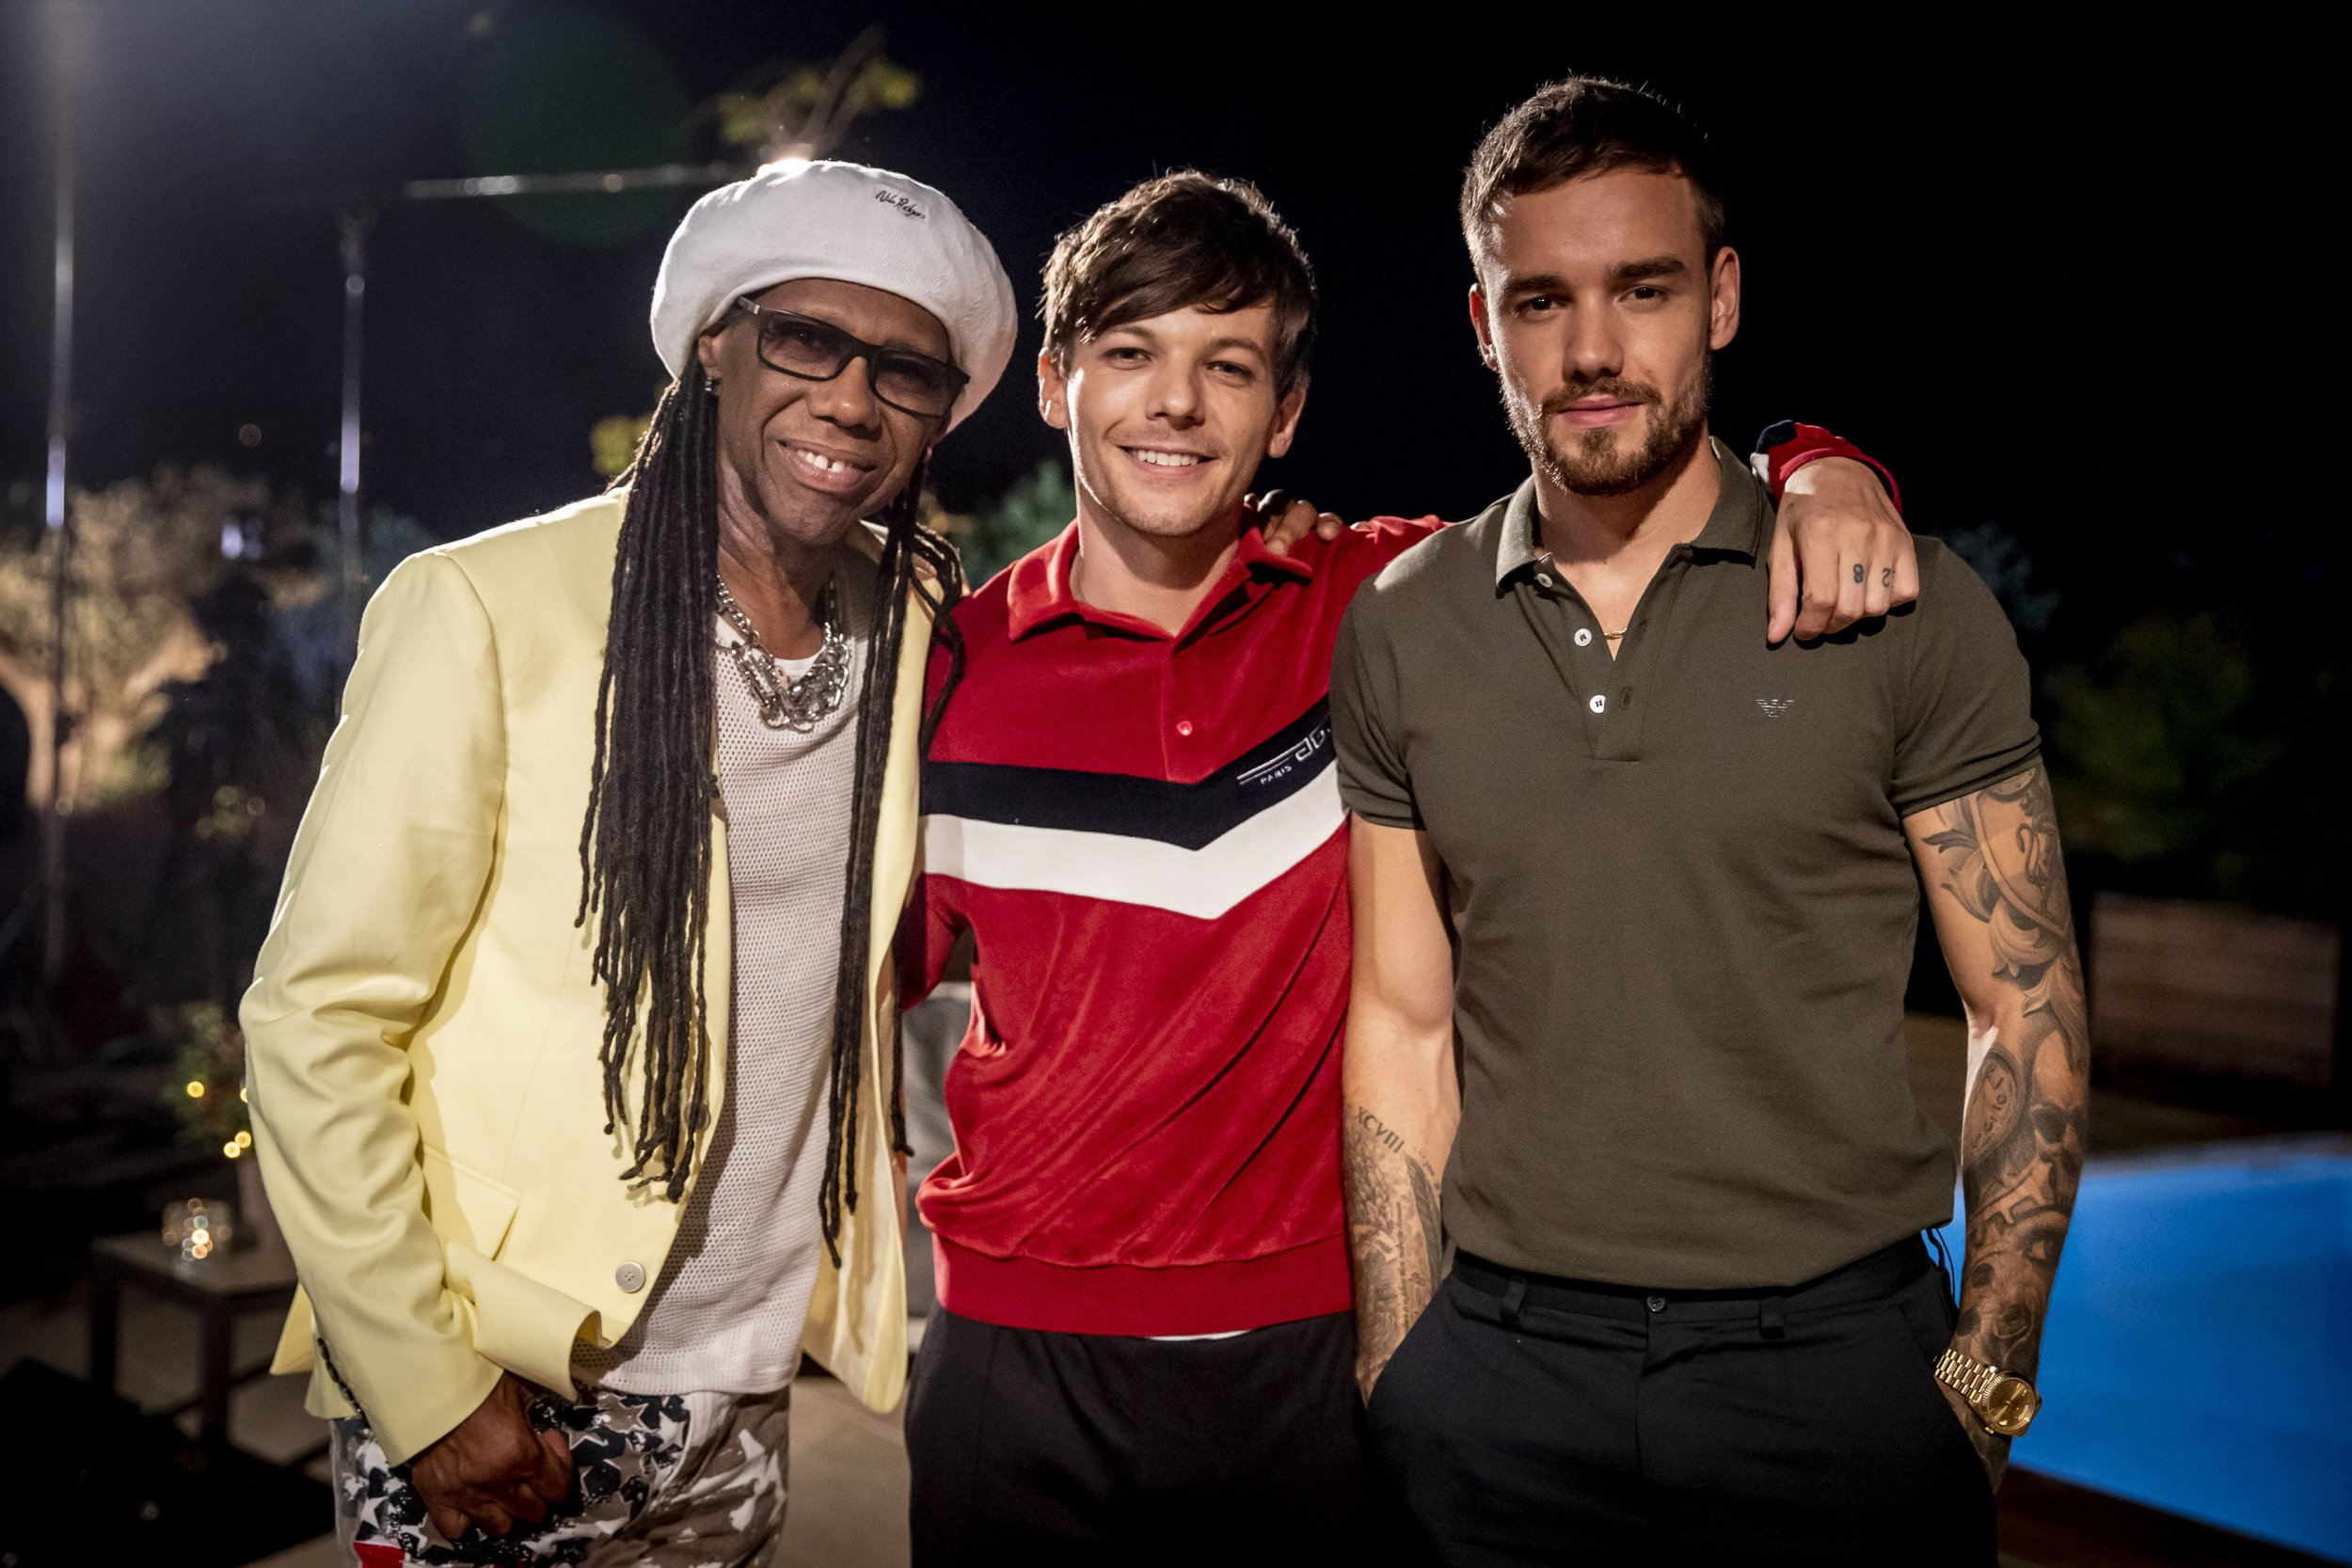 Nile Rodgers reveals Niall Horan was Louis Tomlinson's first pick for X Factor's Judges' Houses: 'I only did it as a favour'